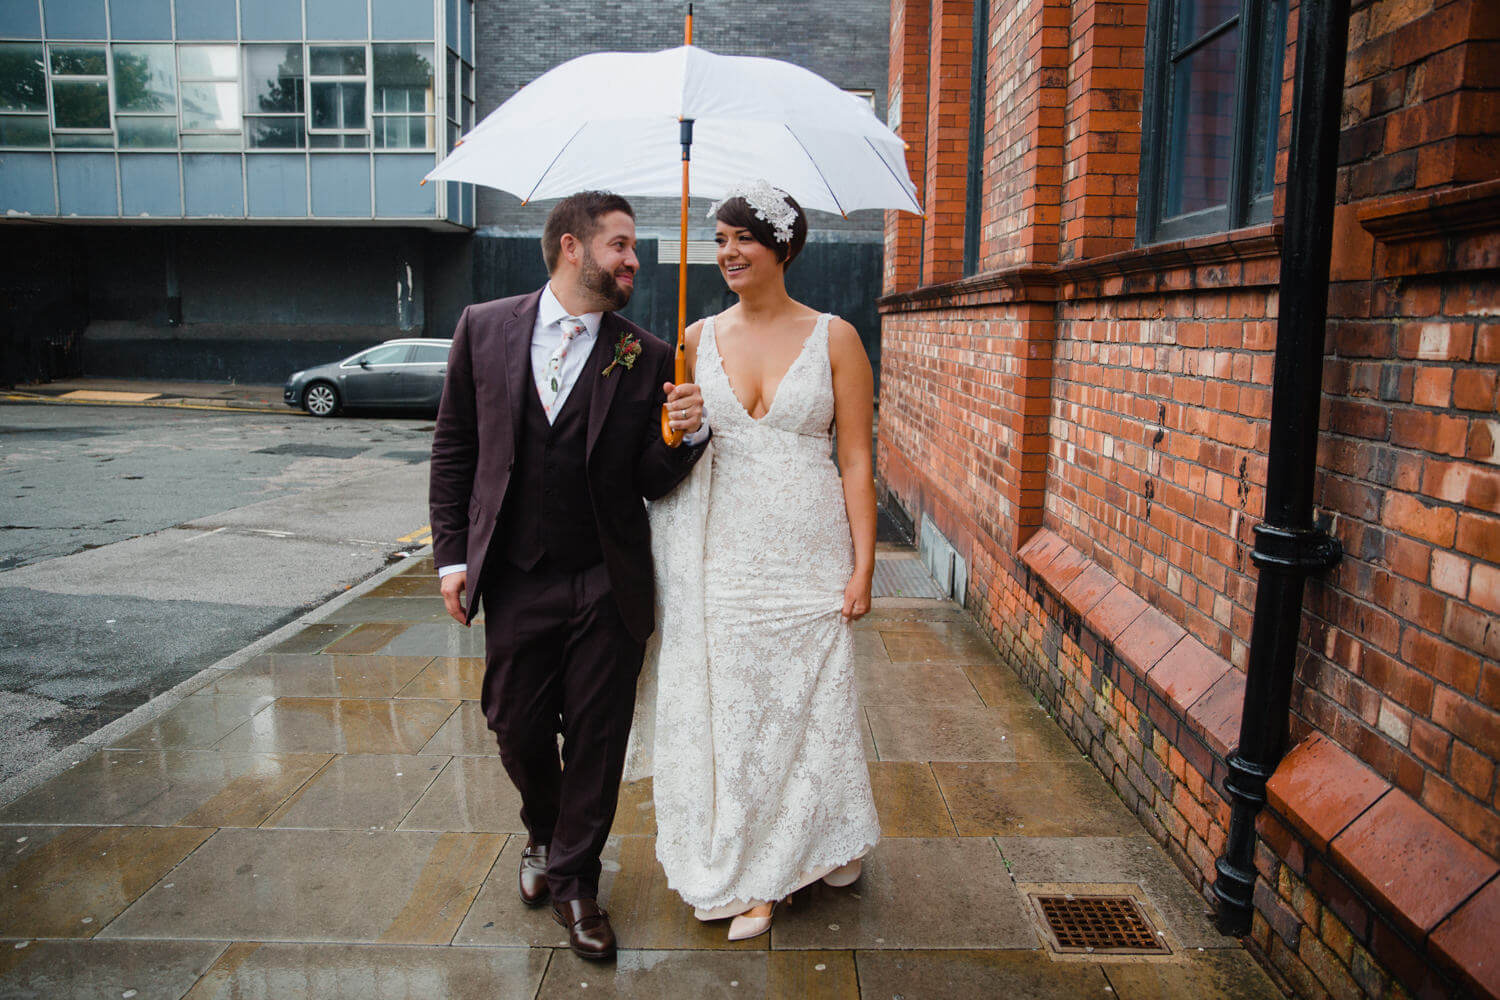 newlyweds walk down pavement for posed portrait next to alley towards camera holding umbrella